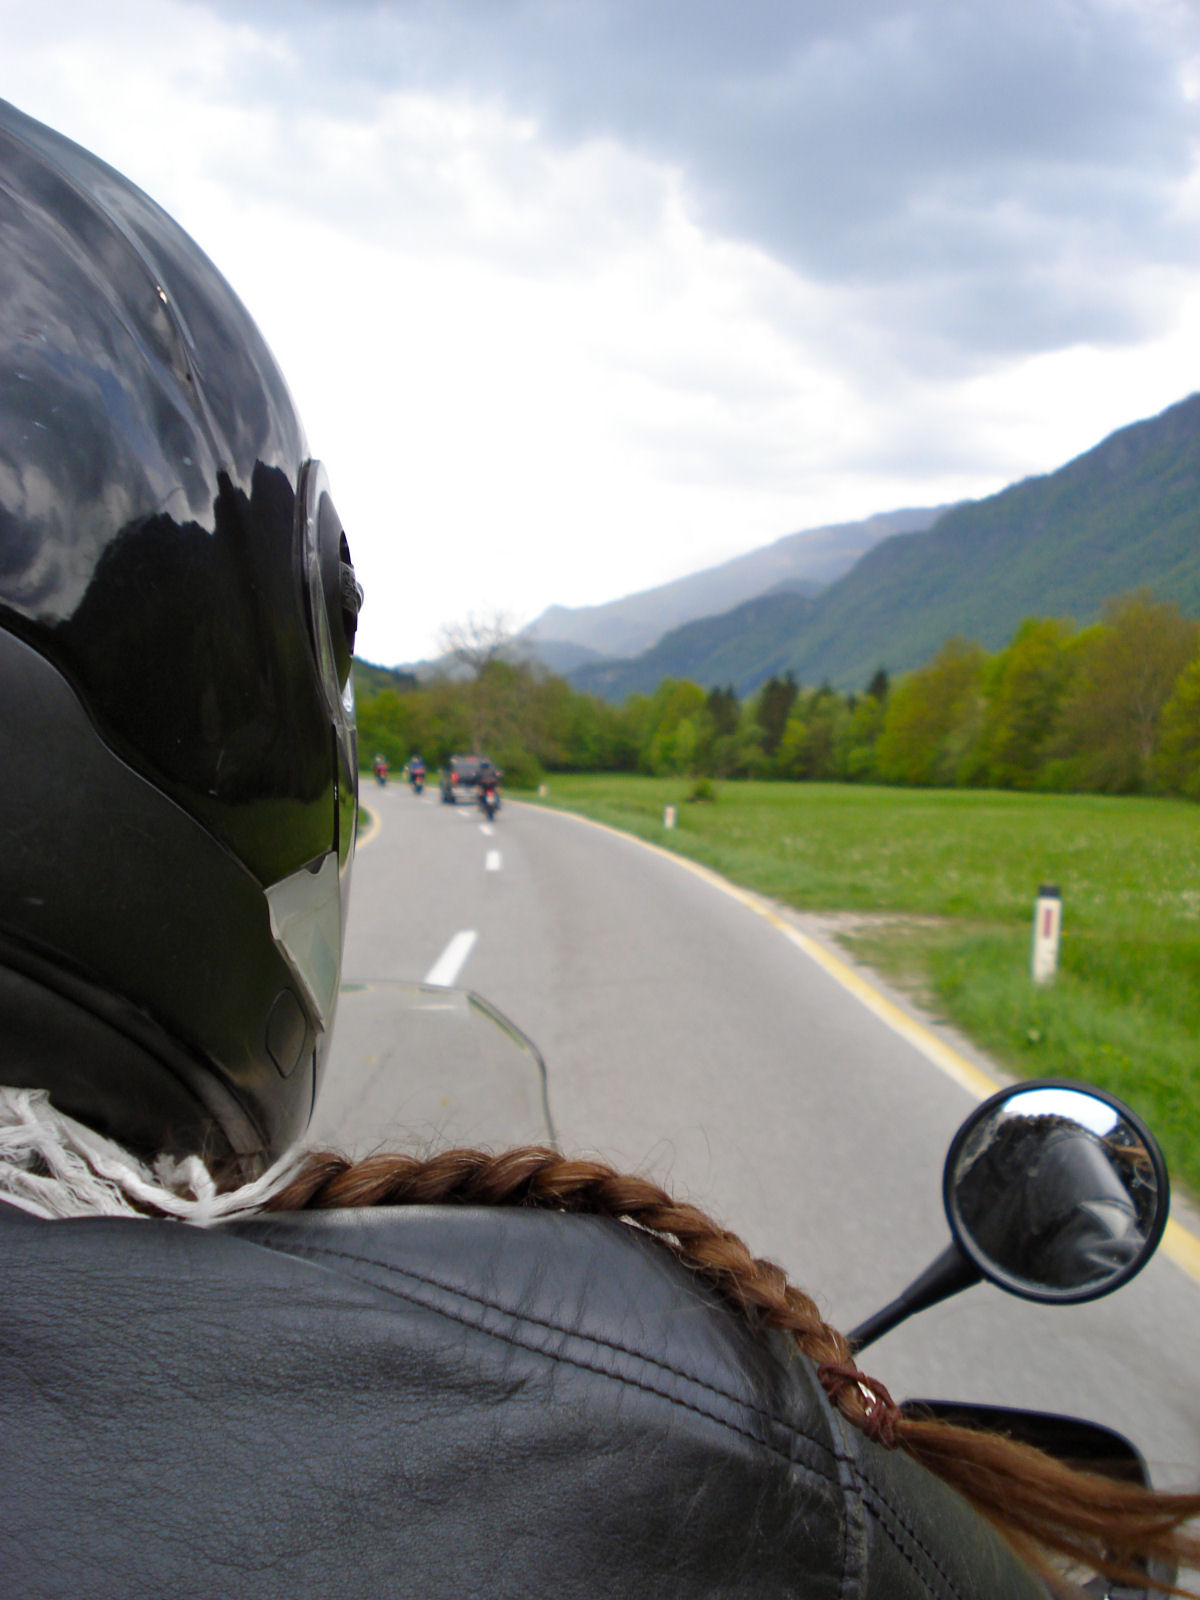 motorcycling-vrsic-02-pass-slovenia